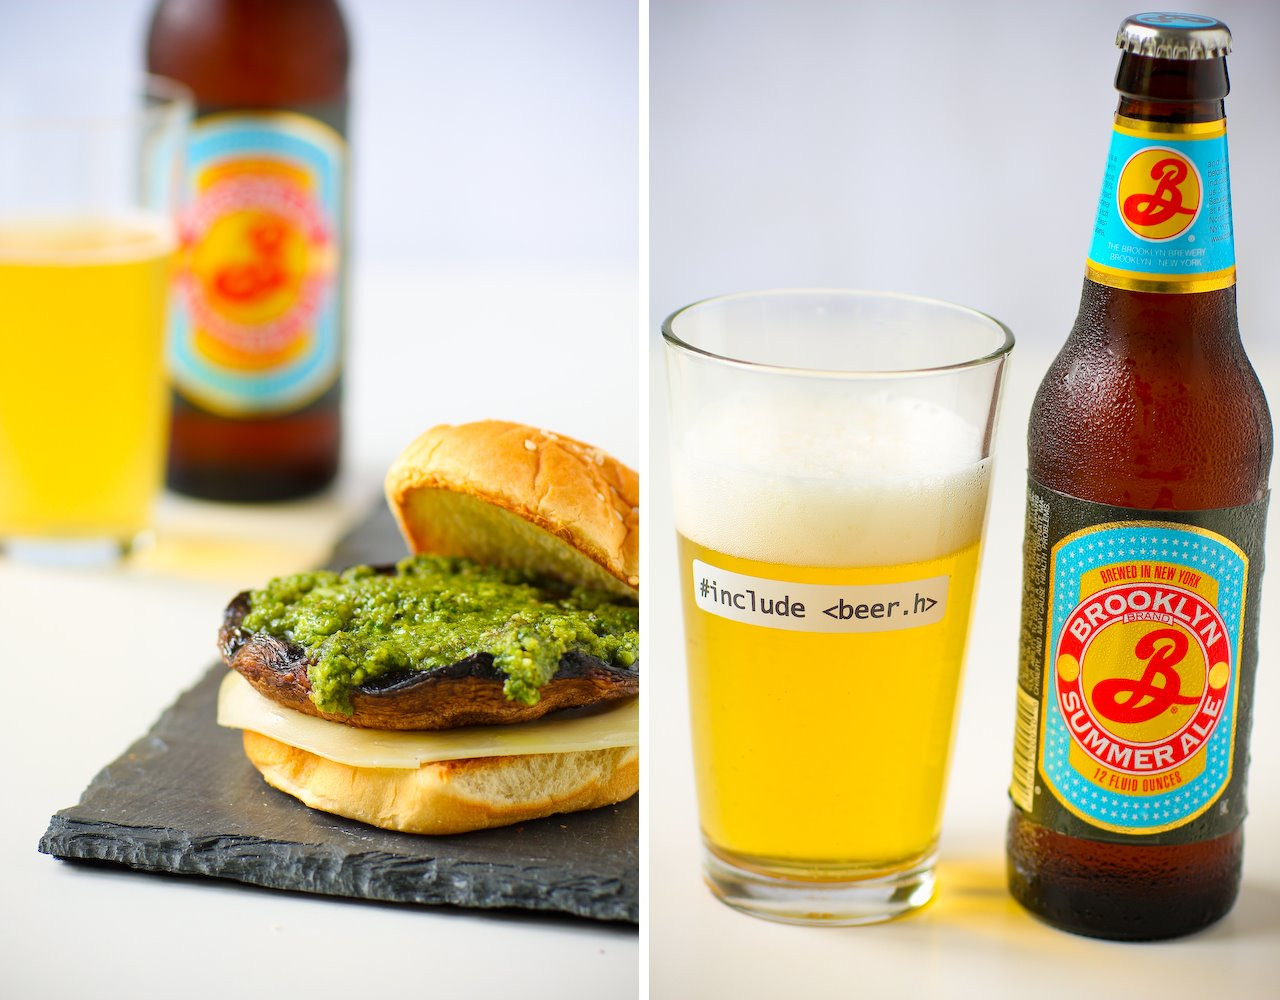 Pesto Portabella Burger, Brooklyn Summer Ale